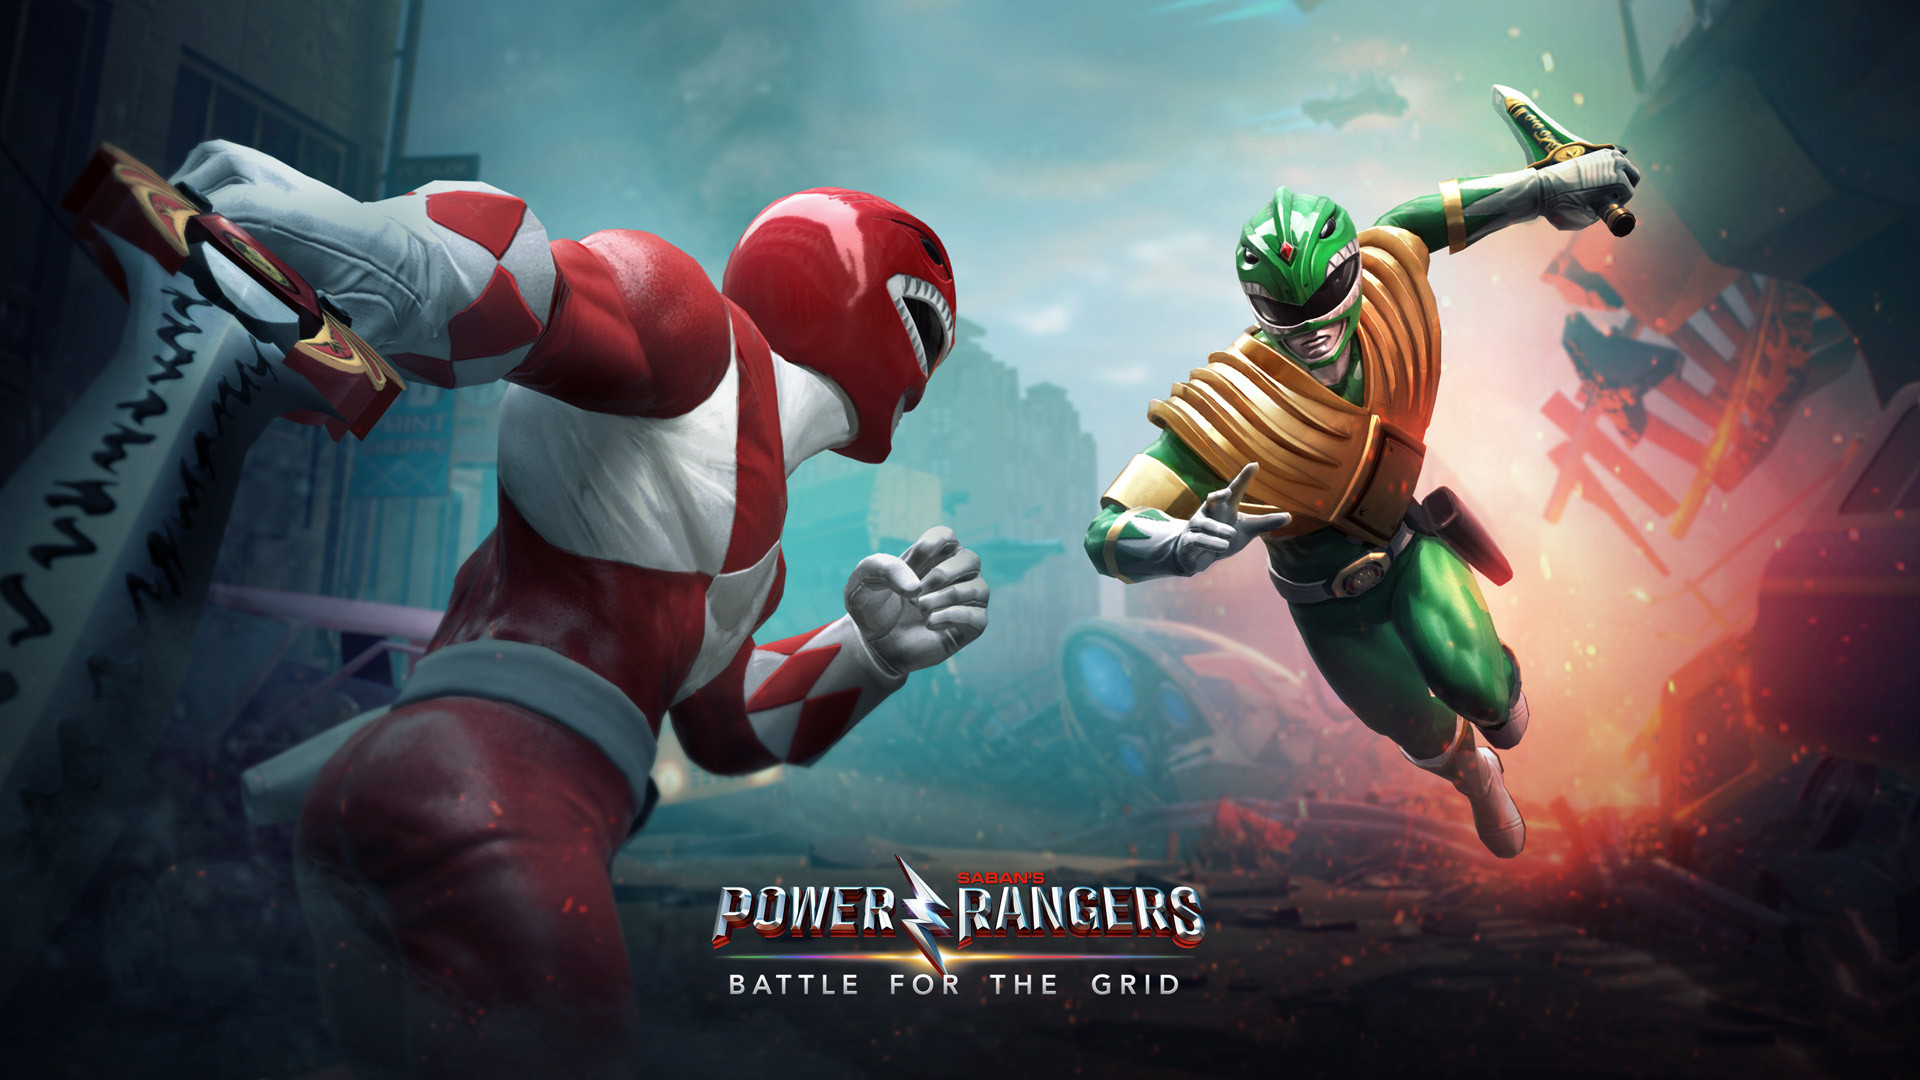 Click image for larger version  Name:	Power Rangers Battle for the Grid Key Art.jpg Views:	1 Size:	365.7 KB ID:	3492568